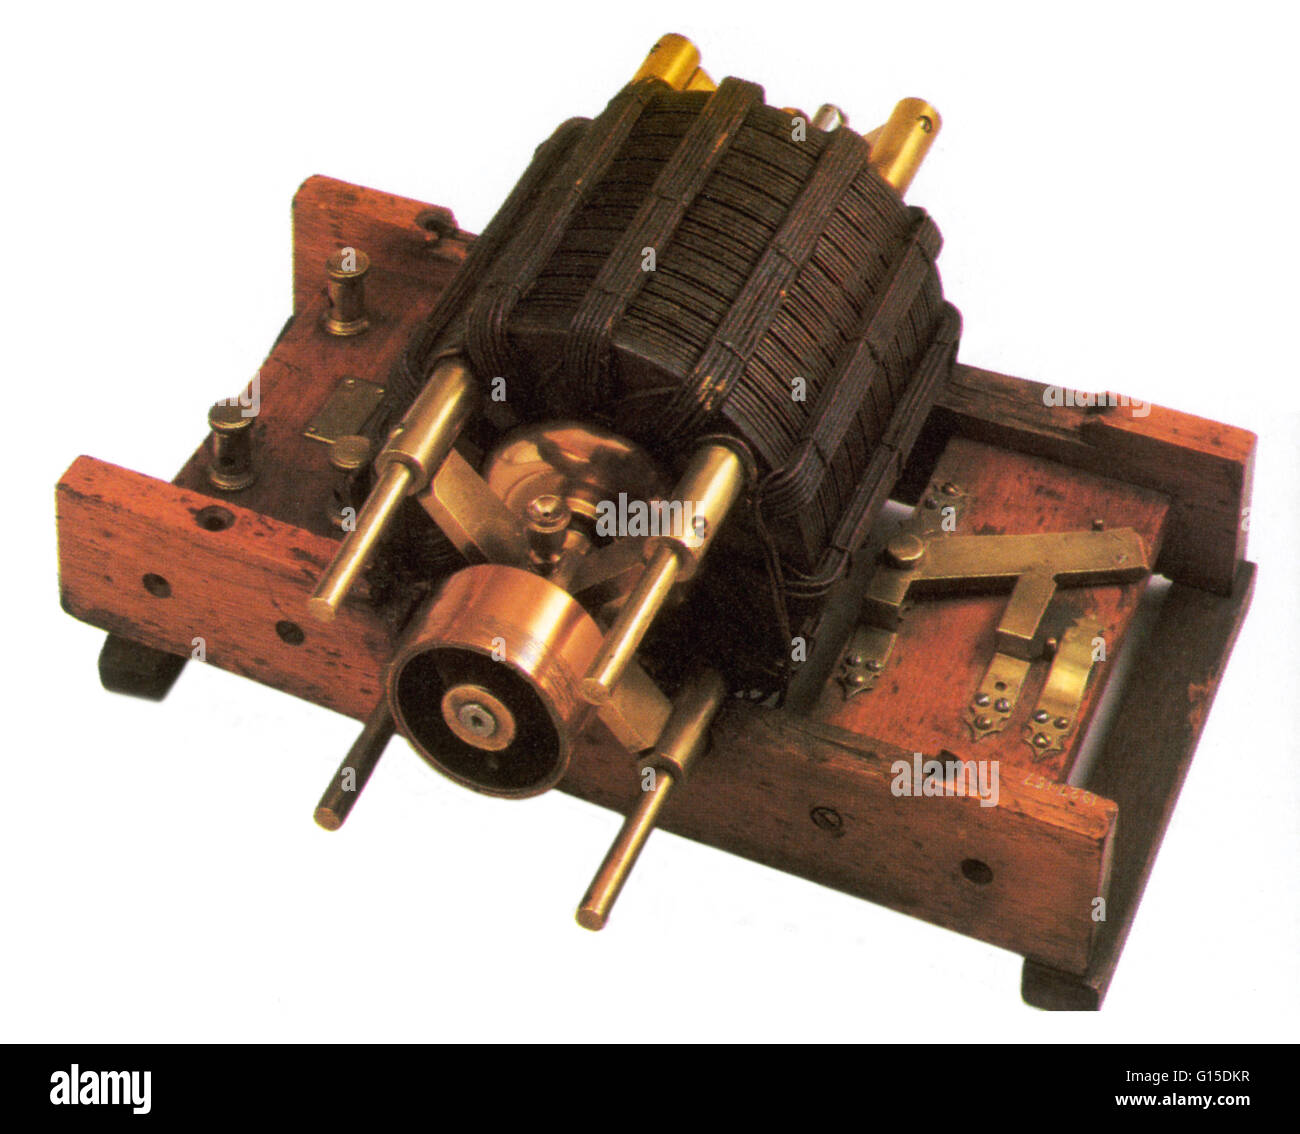 Early induction motor. - Stock Image